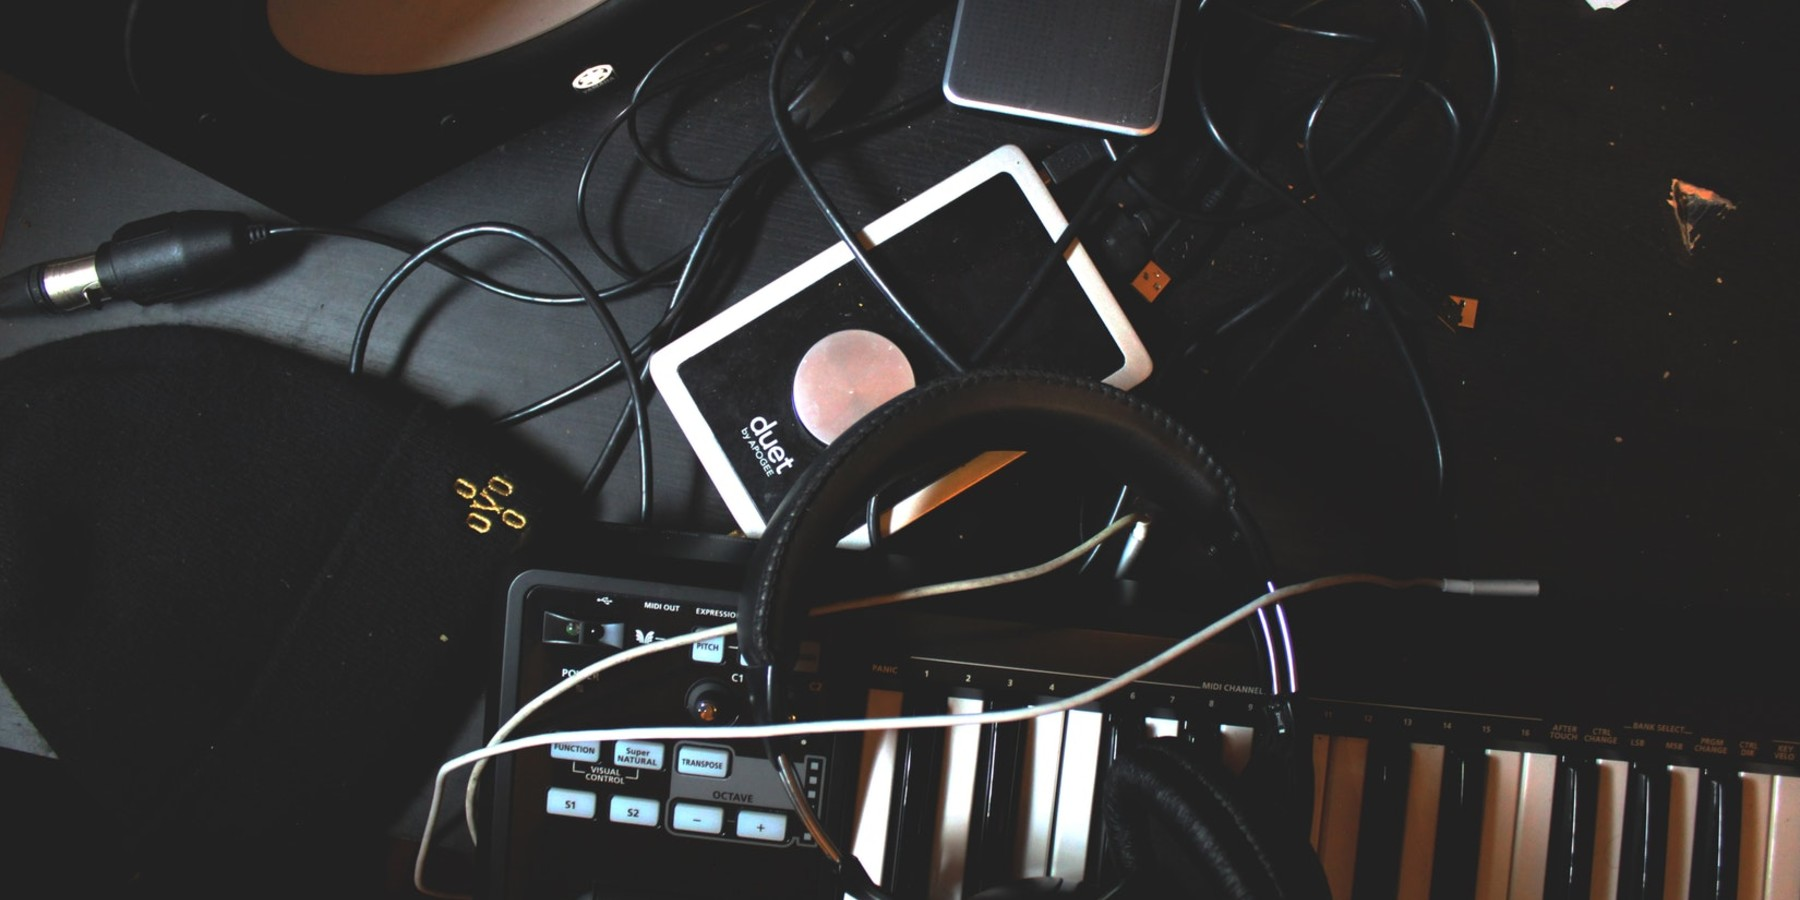 Various musical objects on a desk